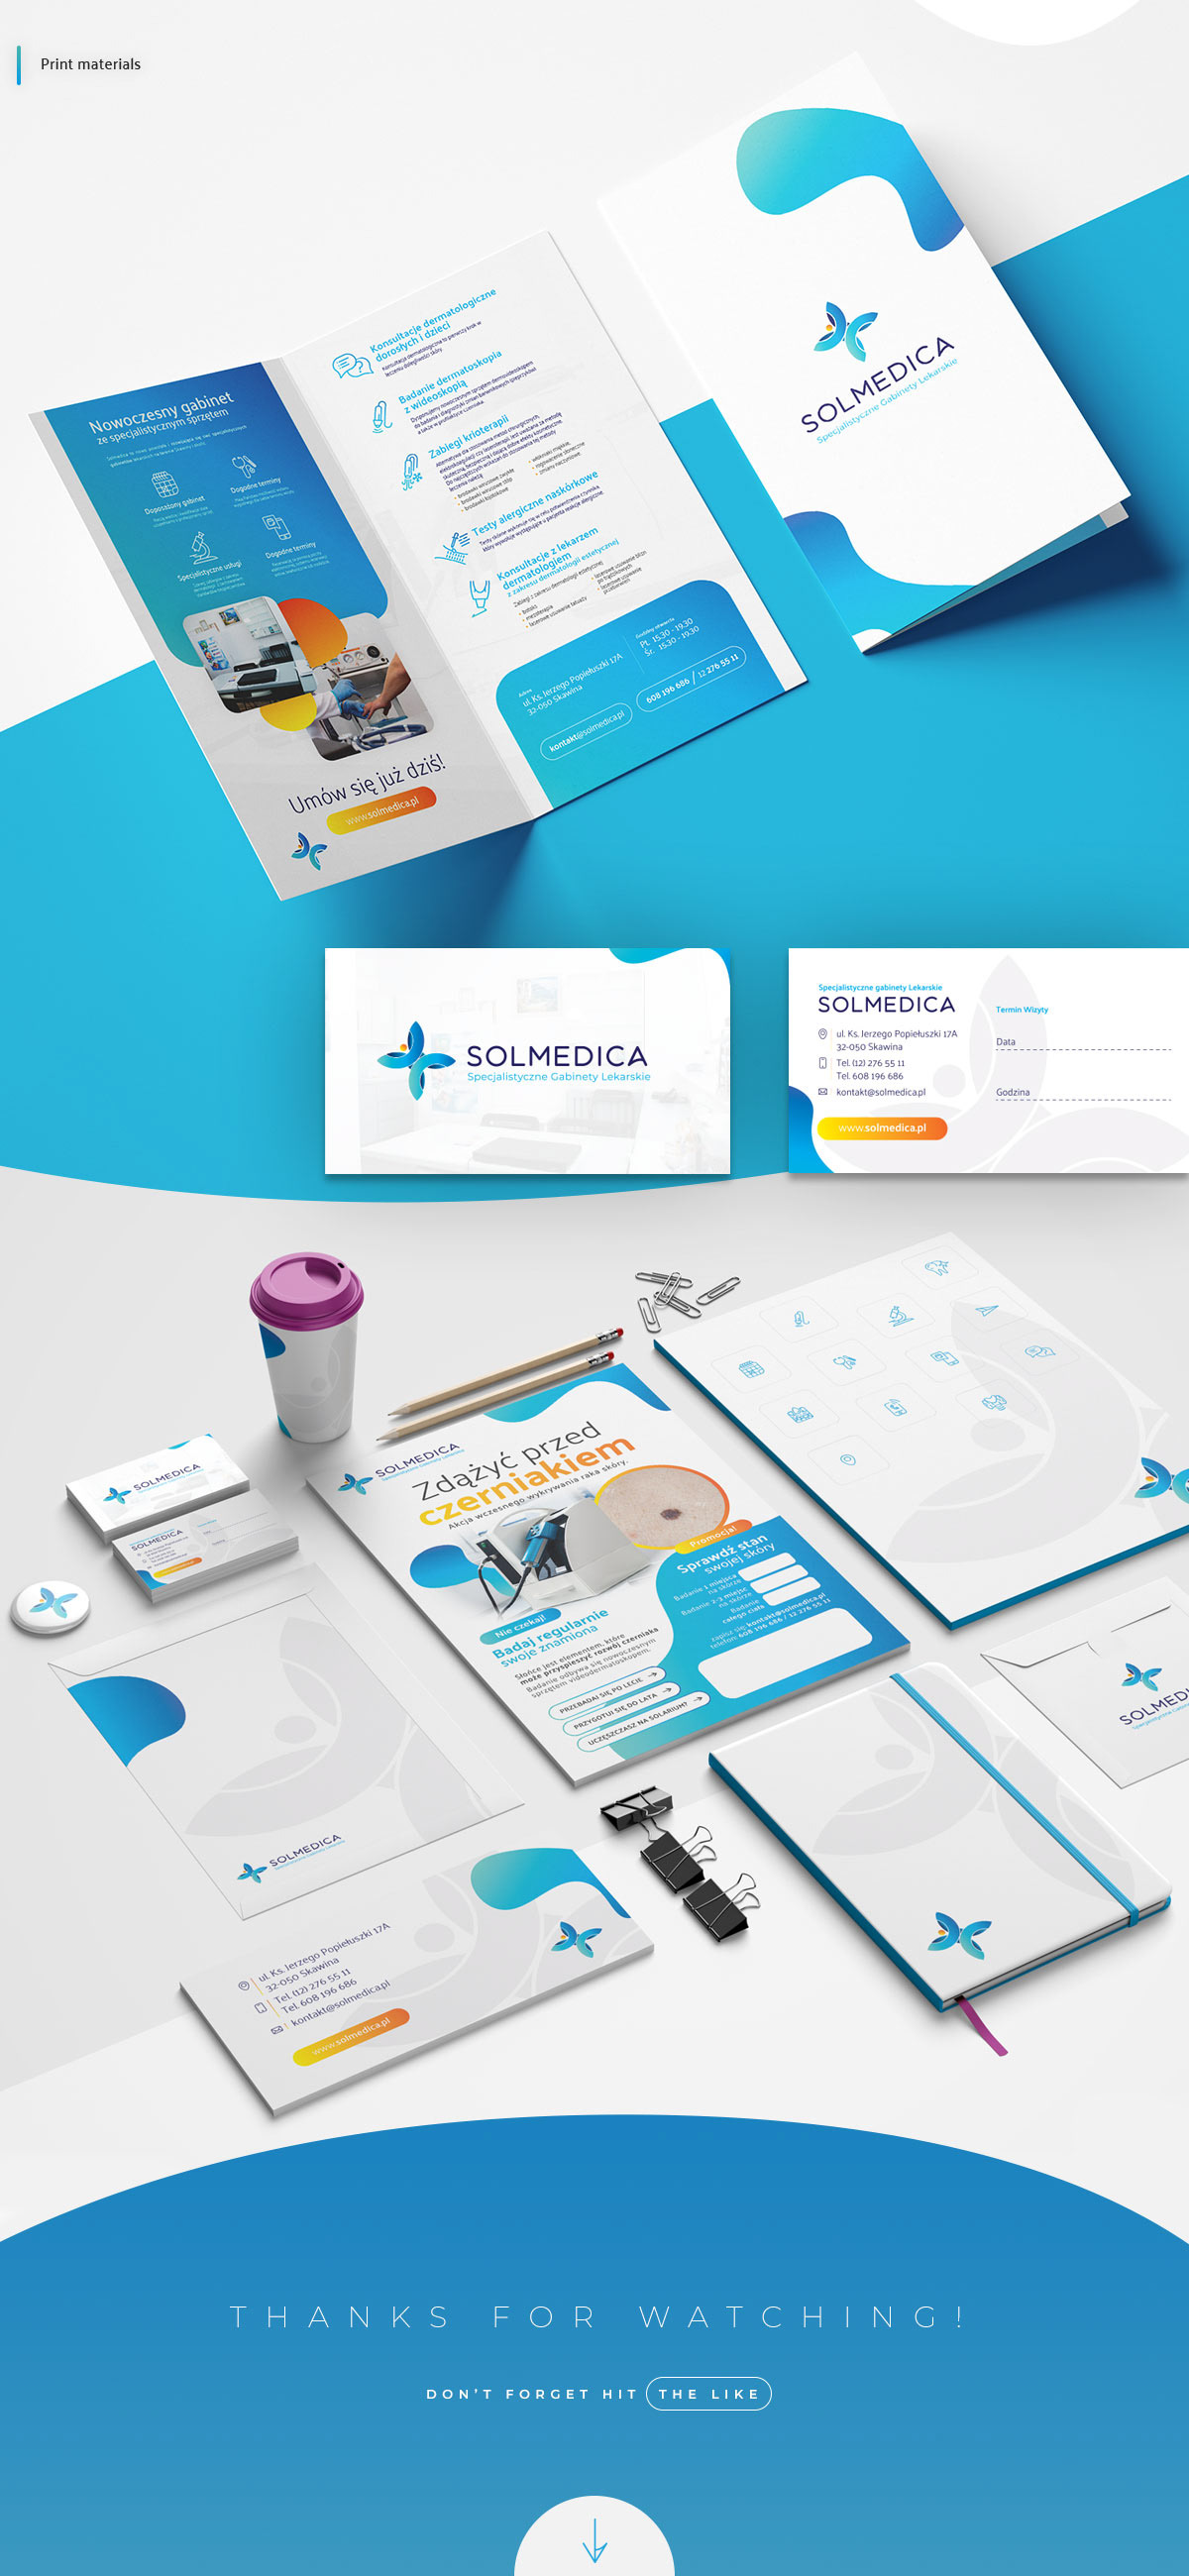 medic clinic doctor Icon Web Treatment cure print light blue